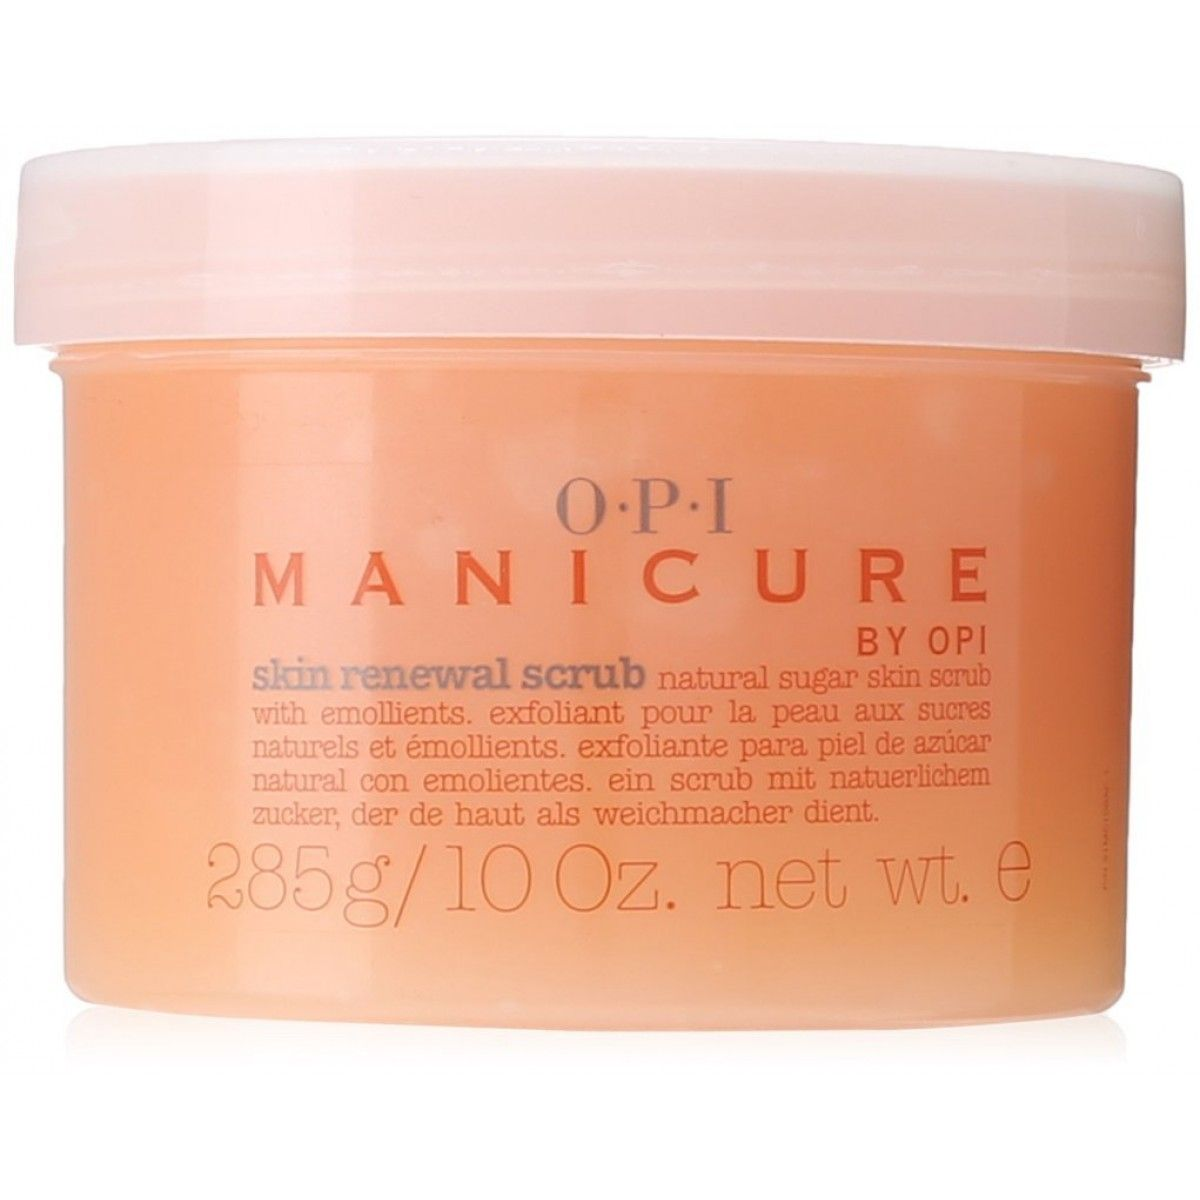 OPI Скраб для рук Manicure Skin Renewal Scrub, 85 гр opi avojuice лосьон для рук